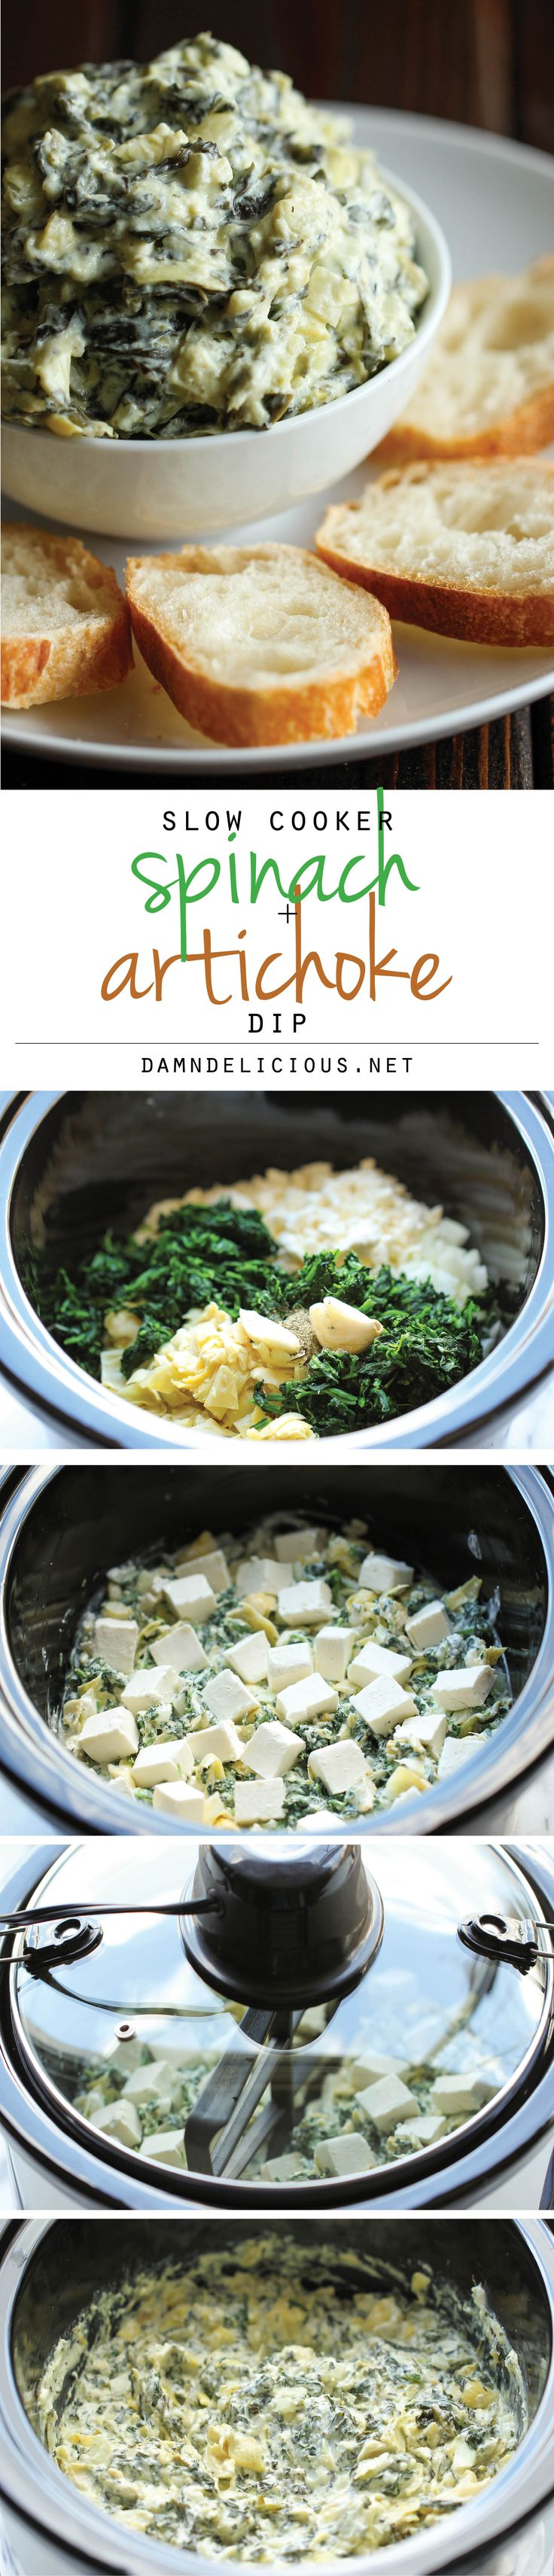 Slow Cooker Spinach and Artichoke Dip - Simply throw everything in the crockpot for the easiest, most effortless spinach and artichoke dip!